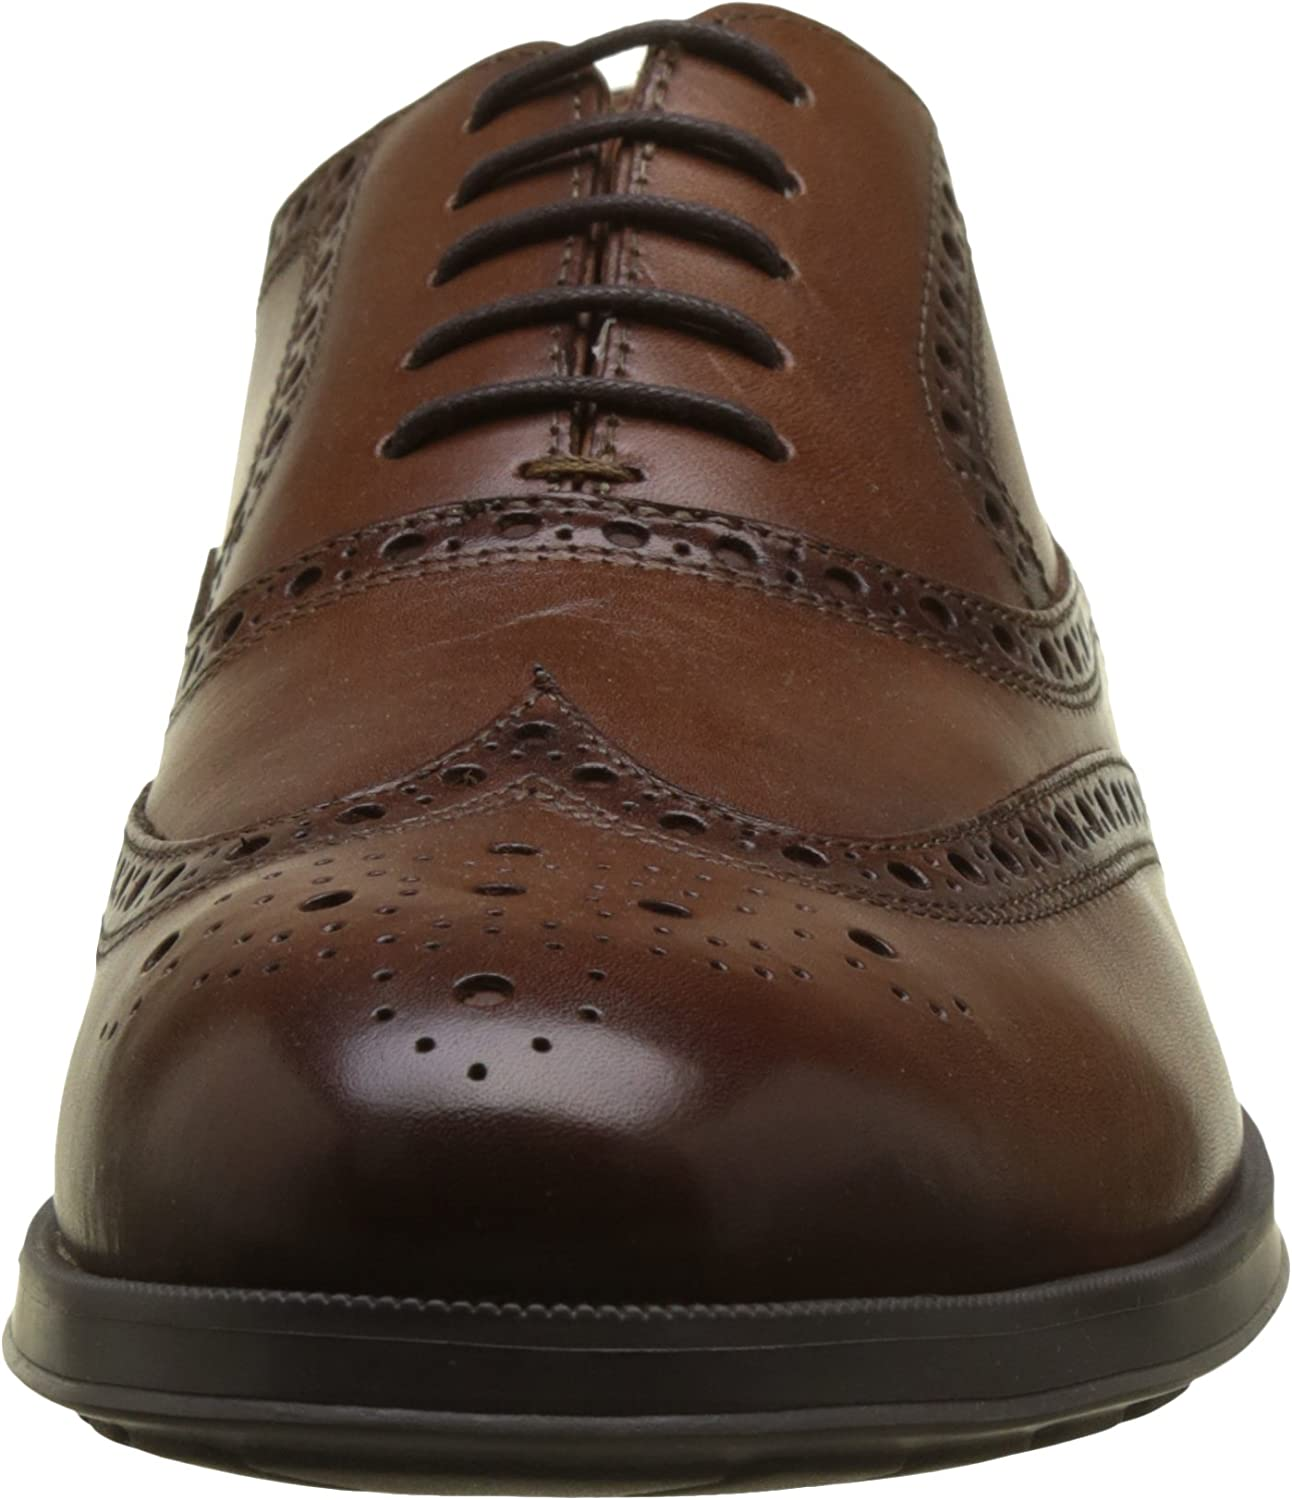 Details about  /Geox Lace-Up Men/'s Leather Dark Brown Offer Last Few Pairs 47GU Recommendation